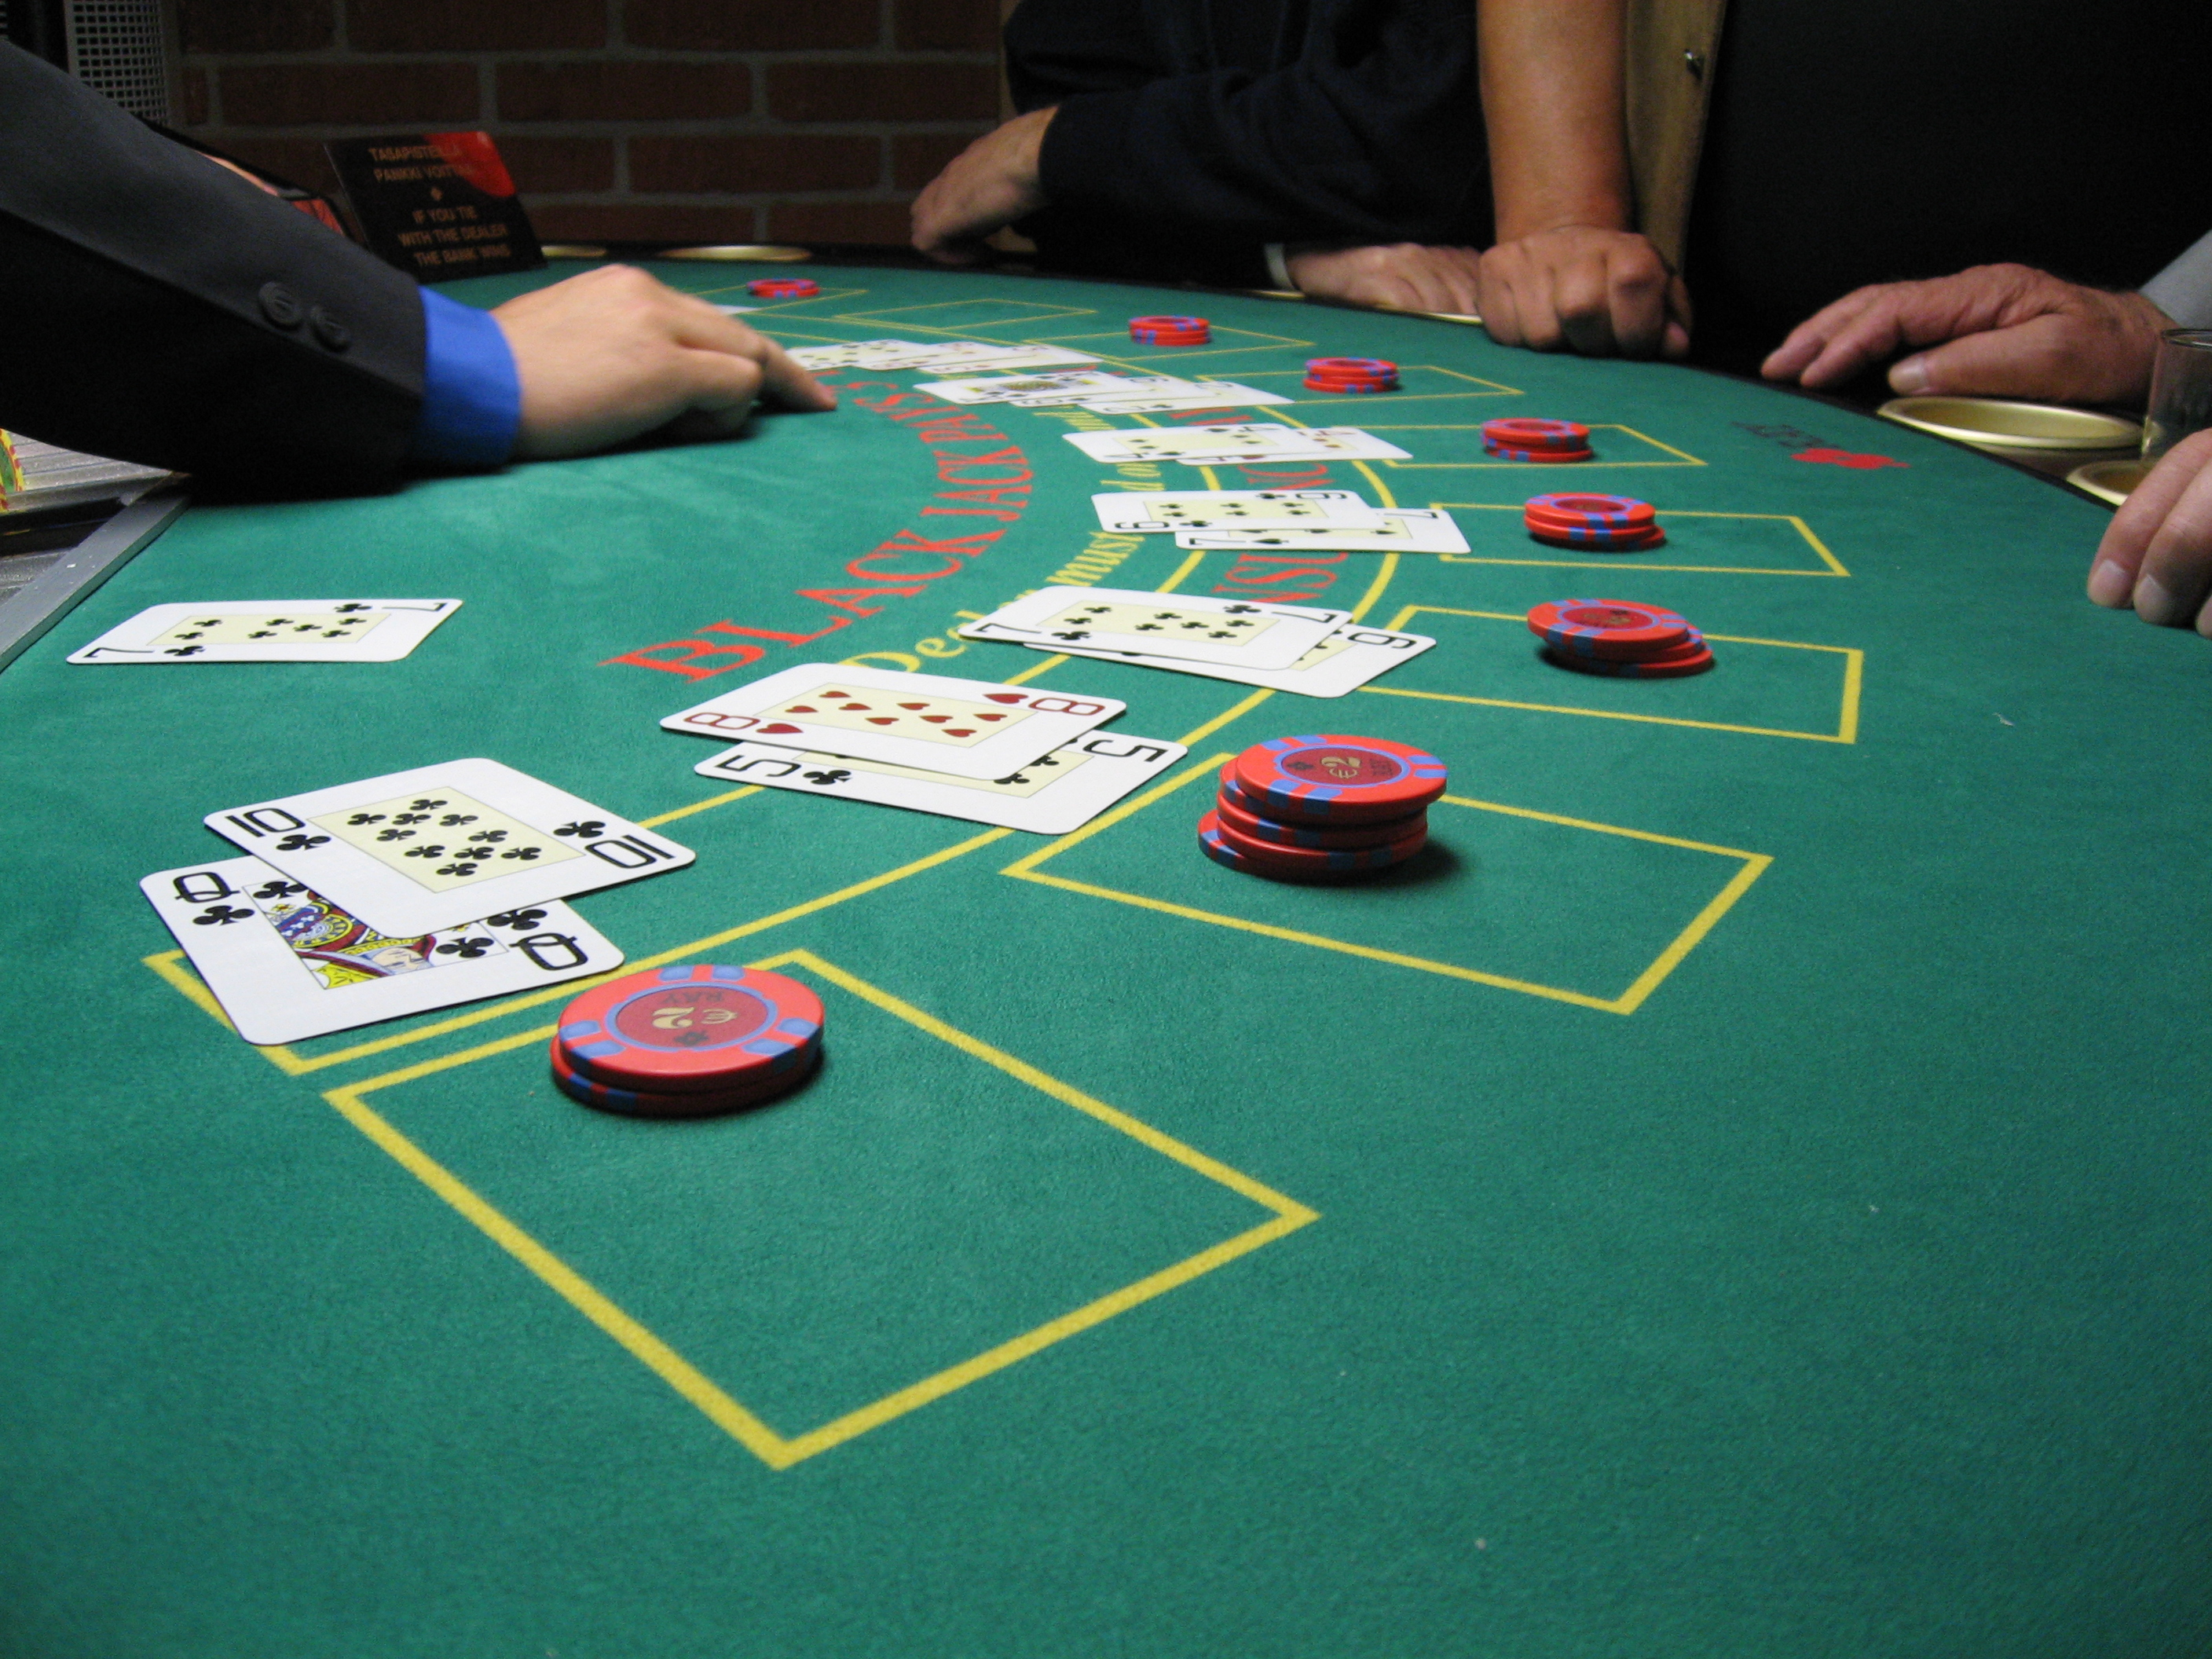 blackjack | All the action from the casino floor: news, views and more